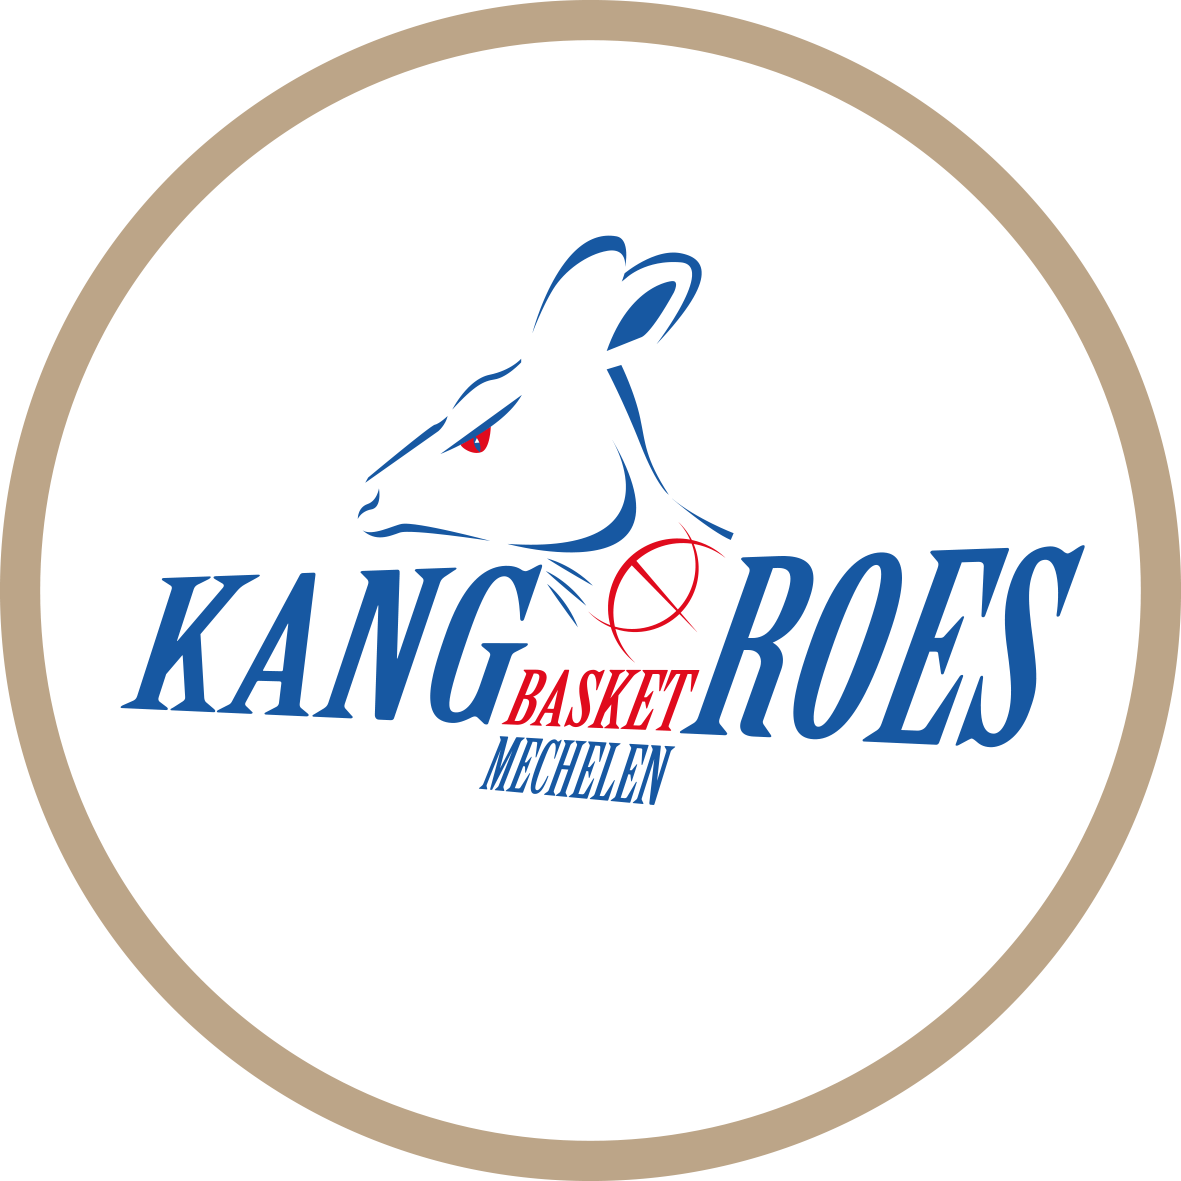 Kangoeroes Basket Mechelen Mechelen